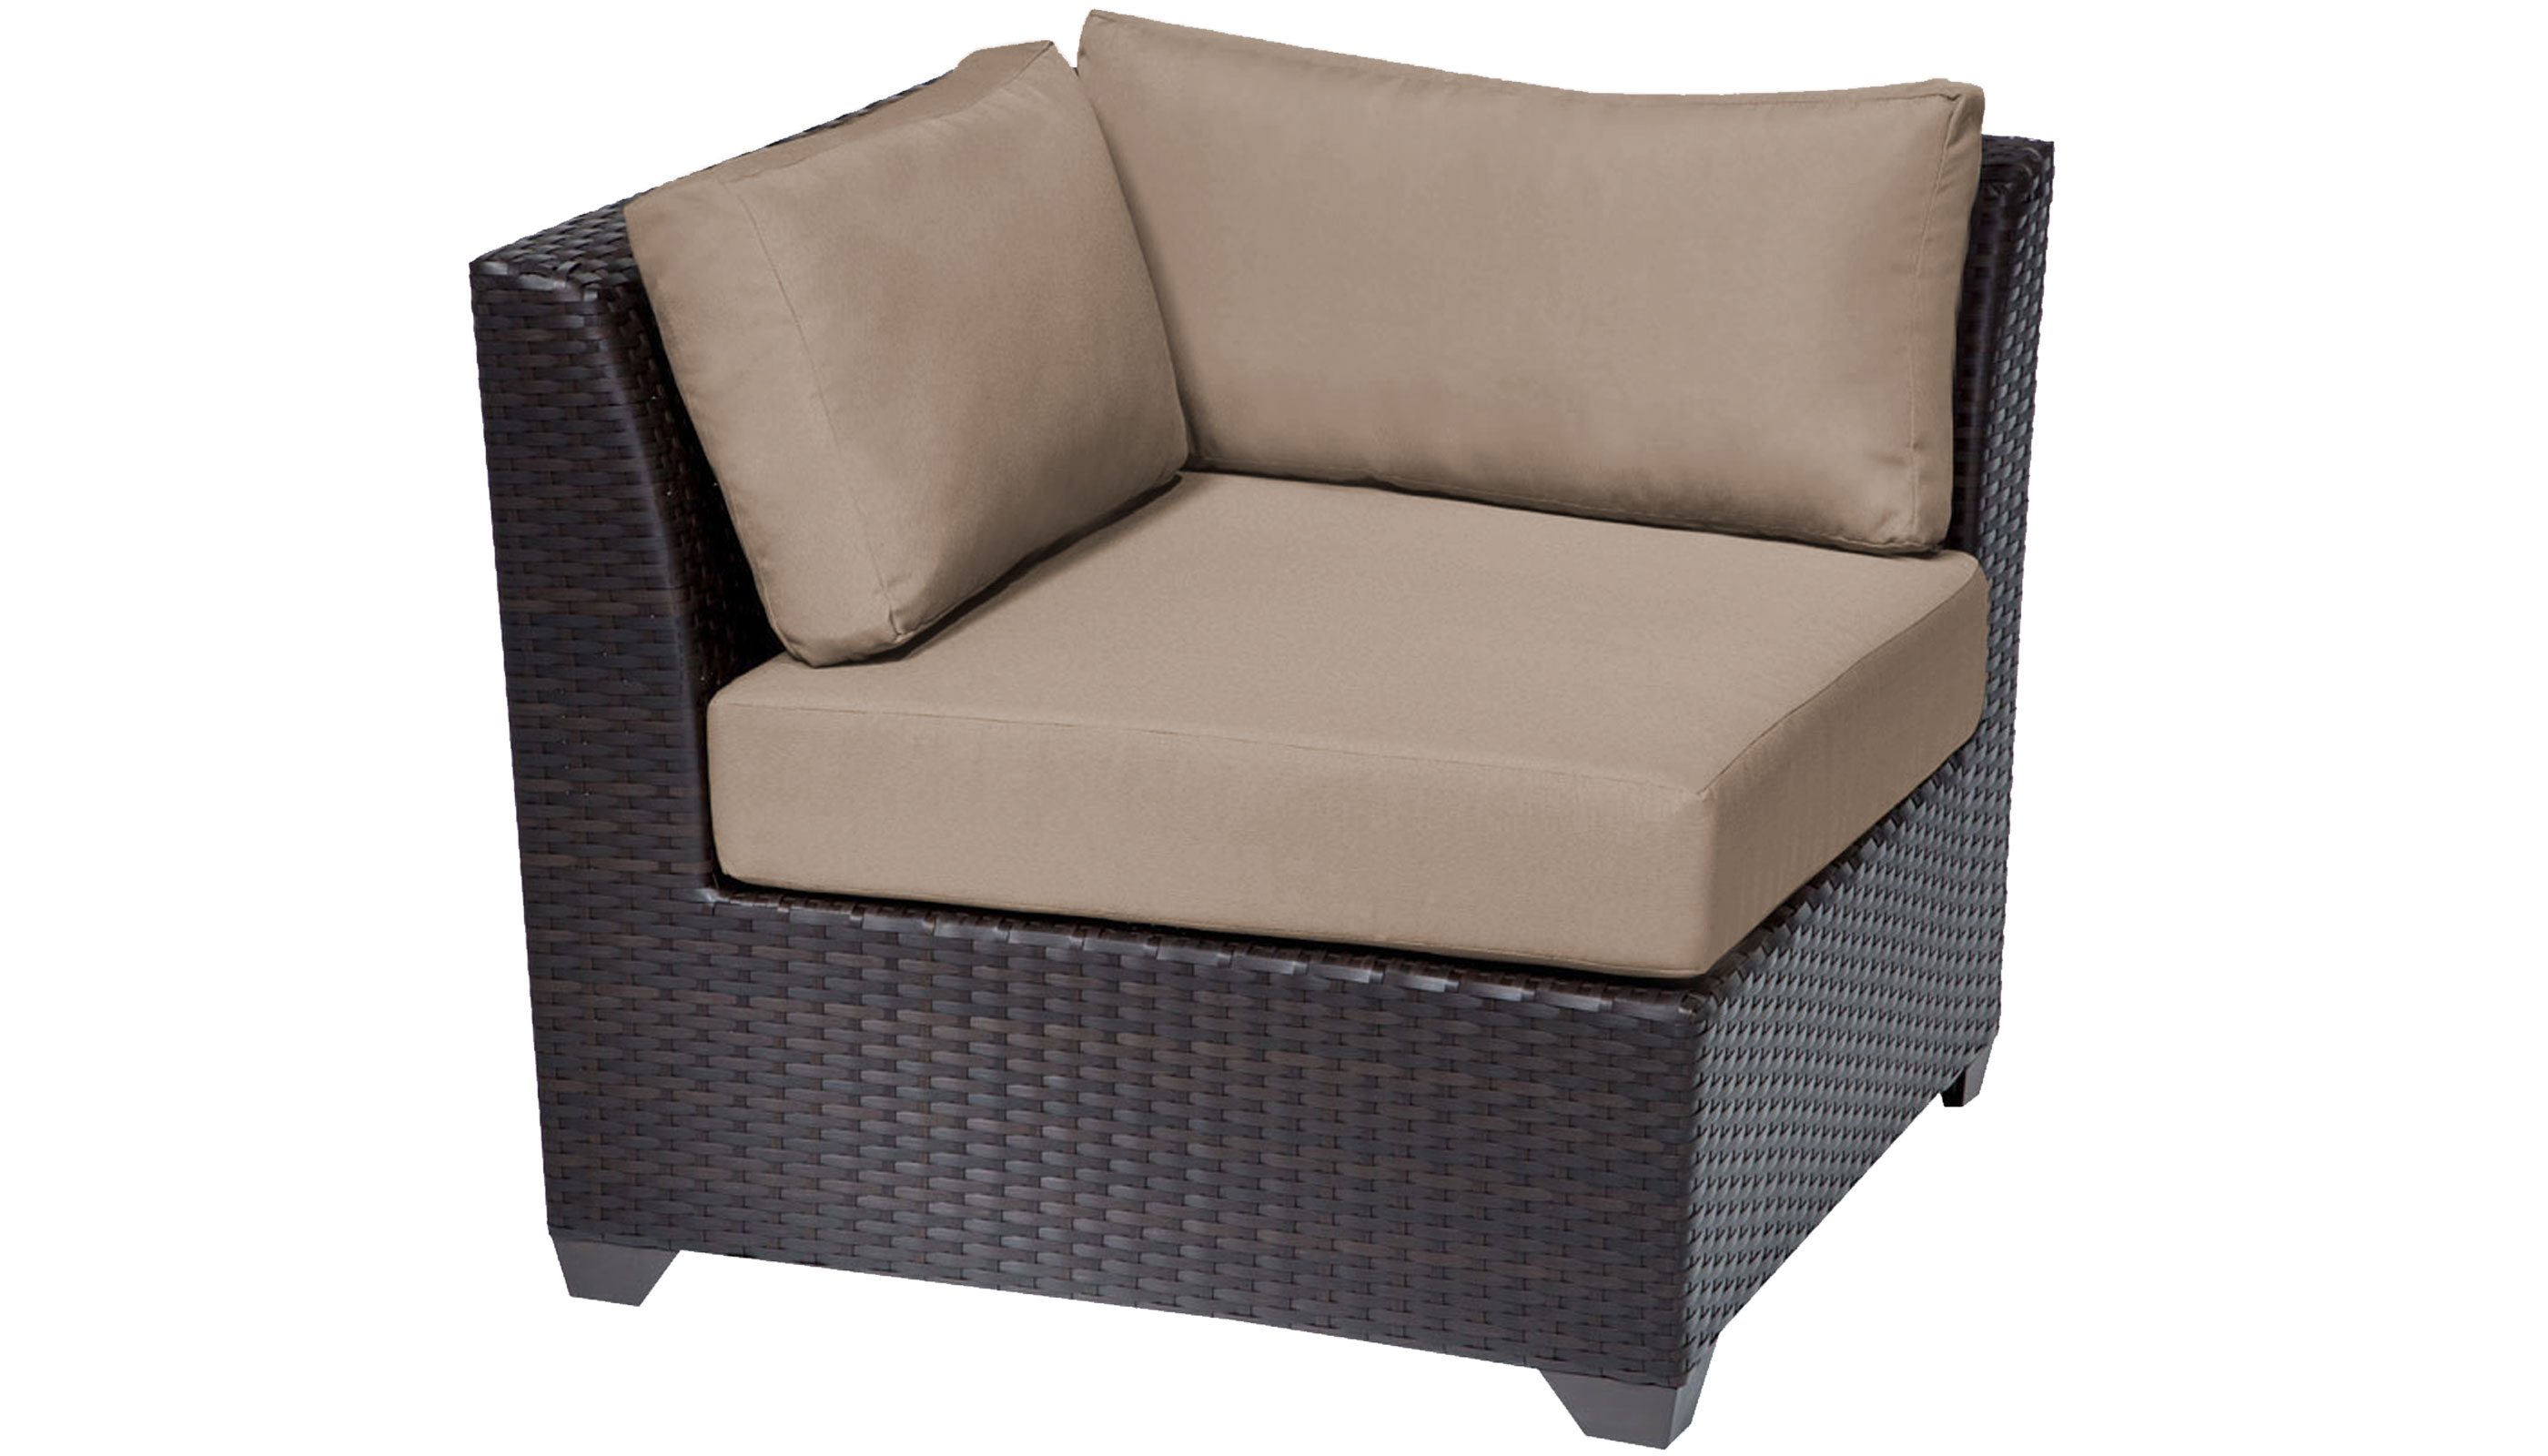 Barbados 2 Piece Outdoor Wicker Patio Furniture Set 02a - TK Classics